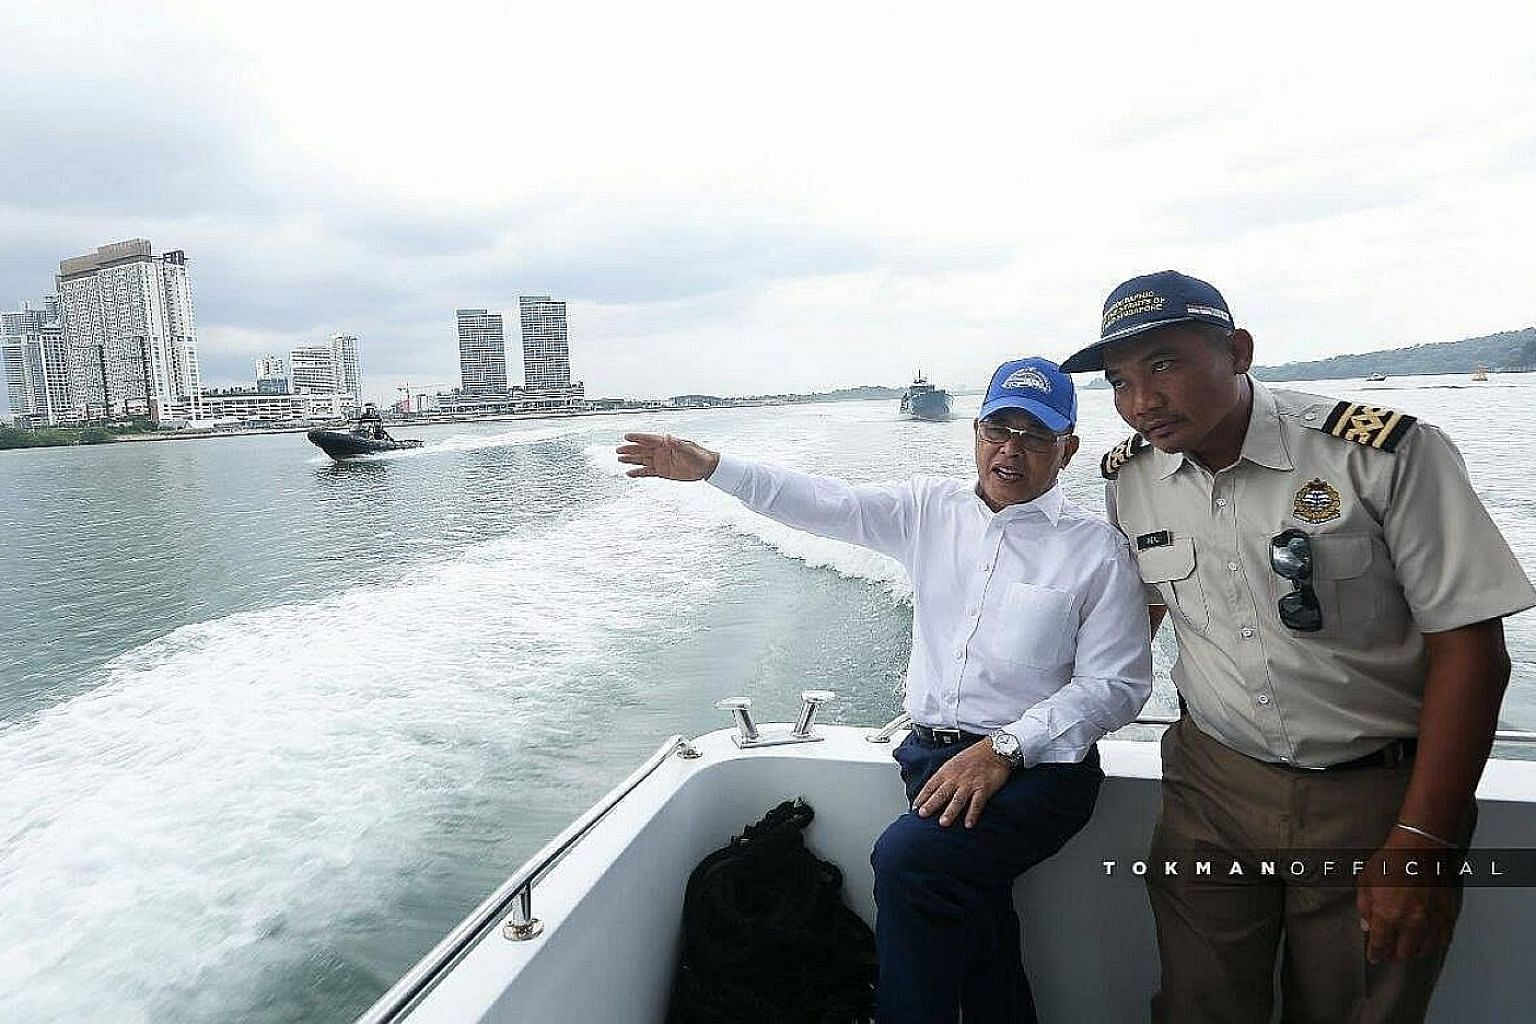 Johor Menteri Besar Osman Sapian (in white) visited a Malaysian government vessel anchored in Singapore's territorial waters on Jan 9. An annual bilateral meeting between Singapore and Malaysia, set for the following Monday, was postponed following D